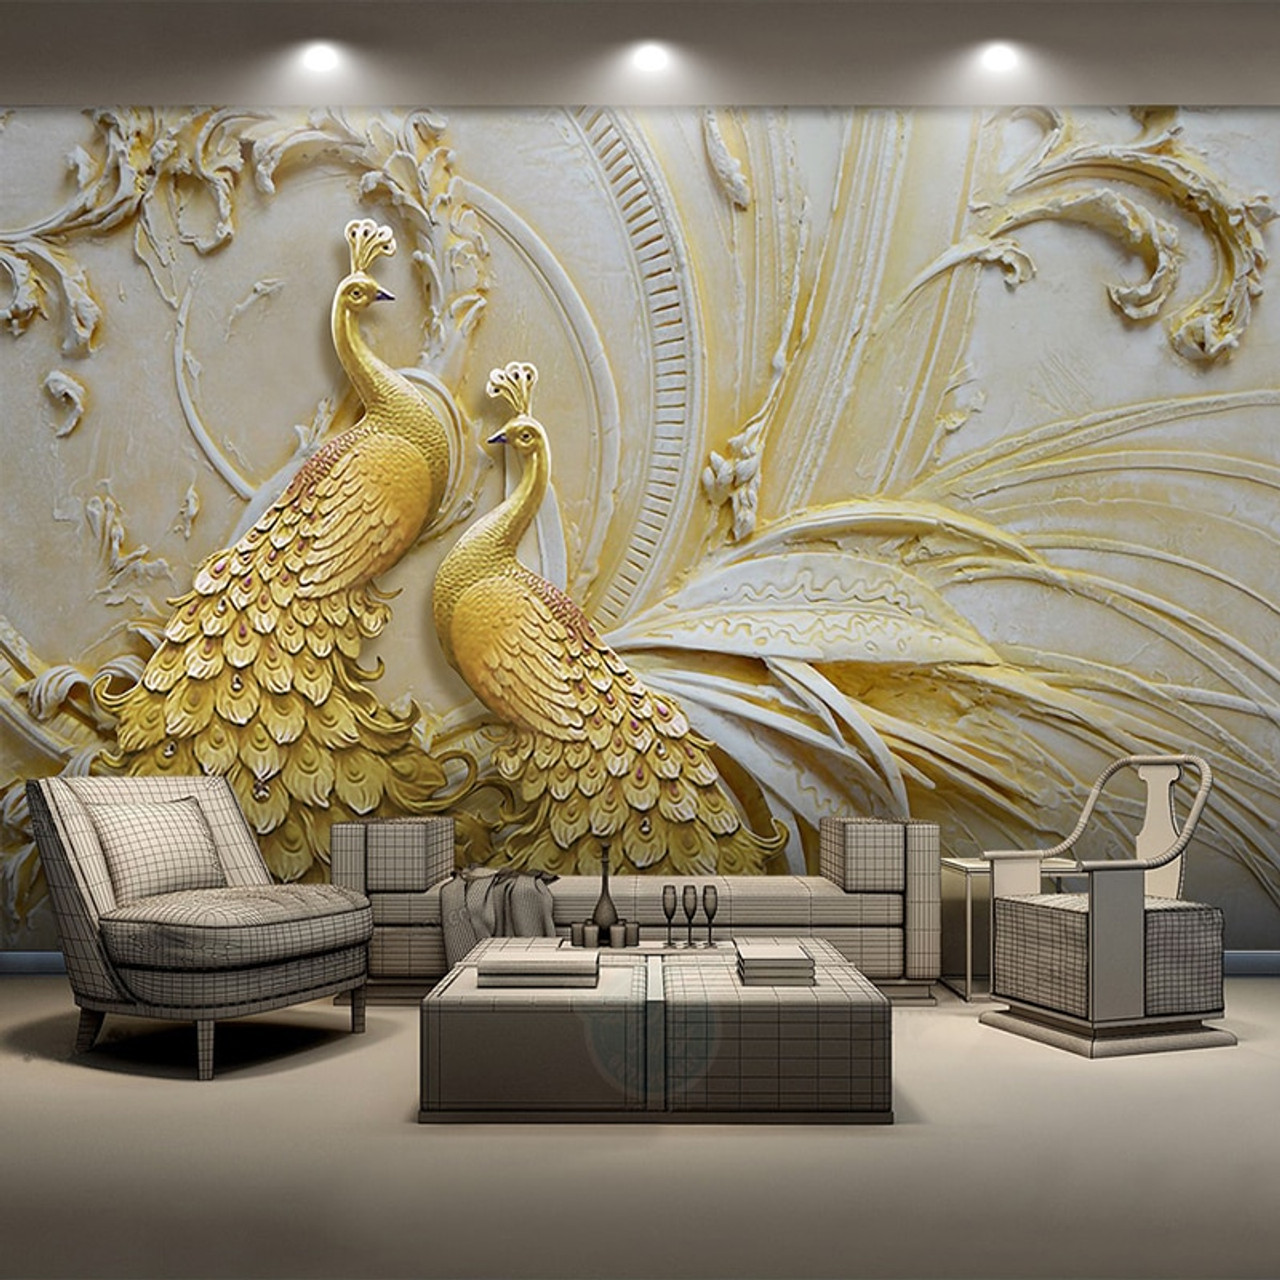 Custom Mural Wallpaper For Walls 3D Stereoscopic Embossed ...